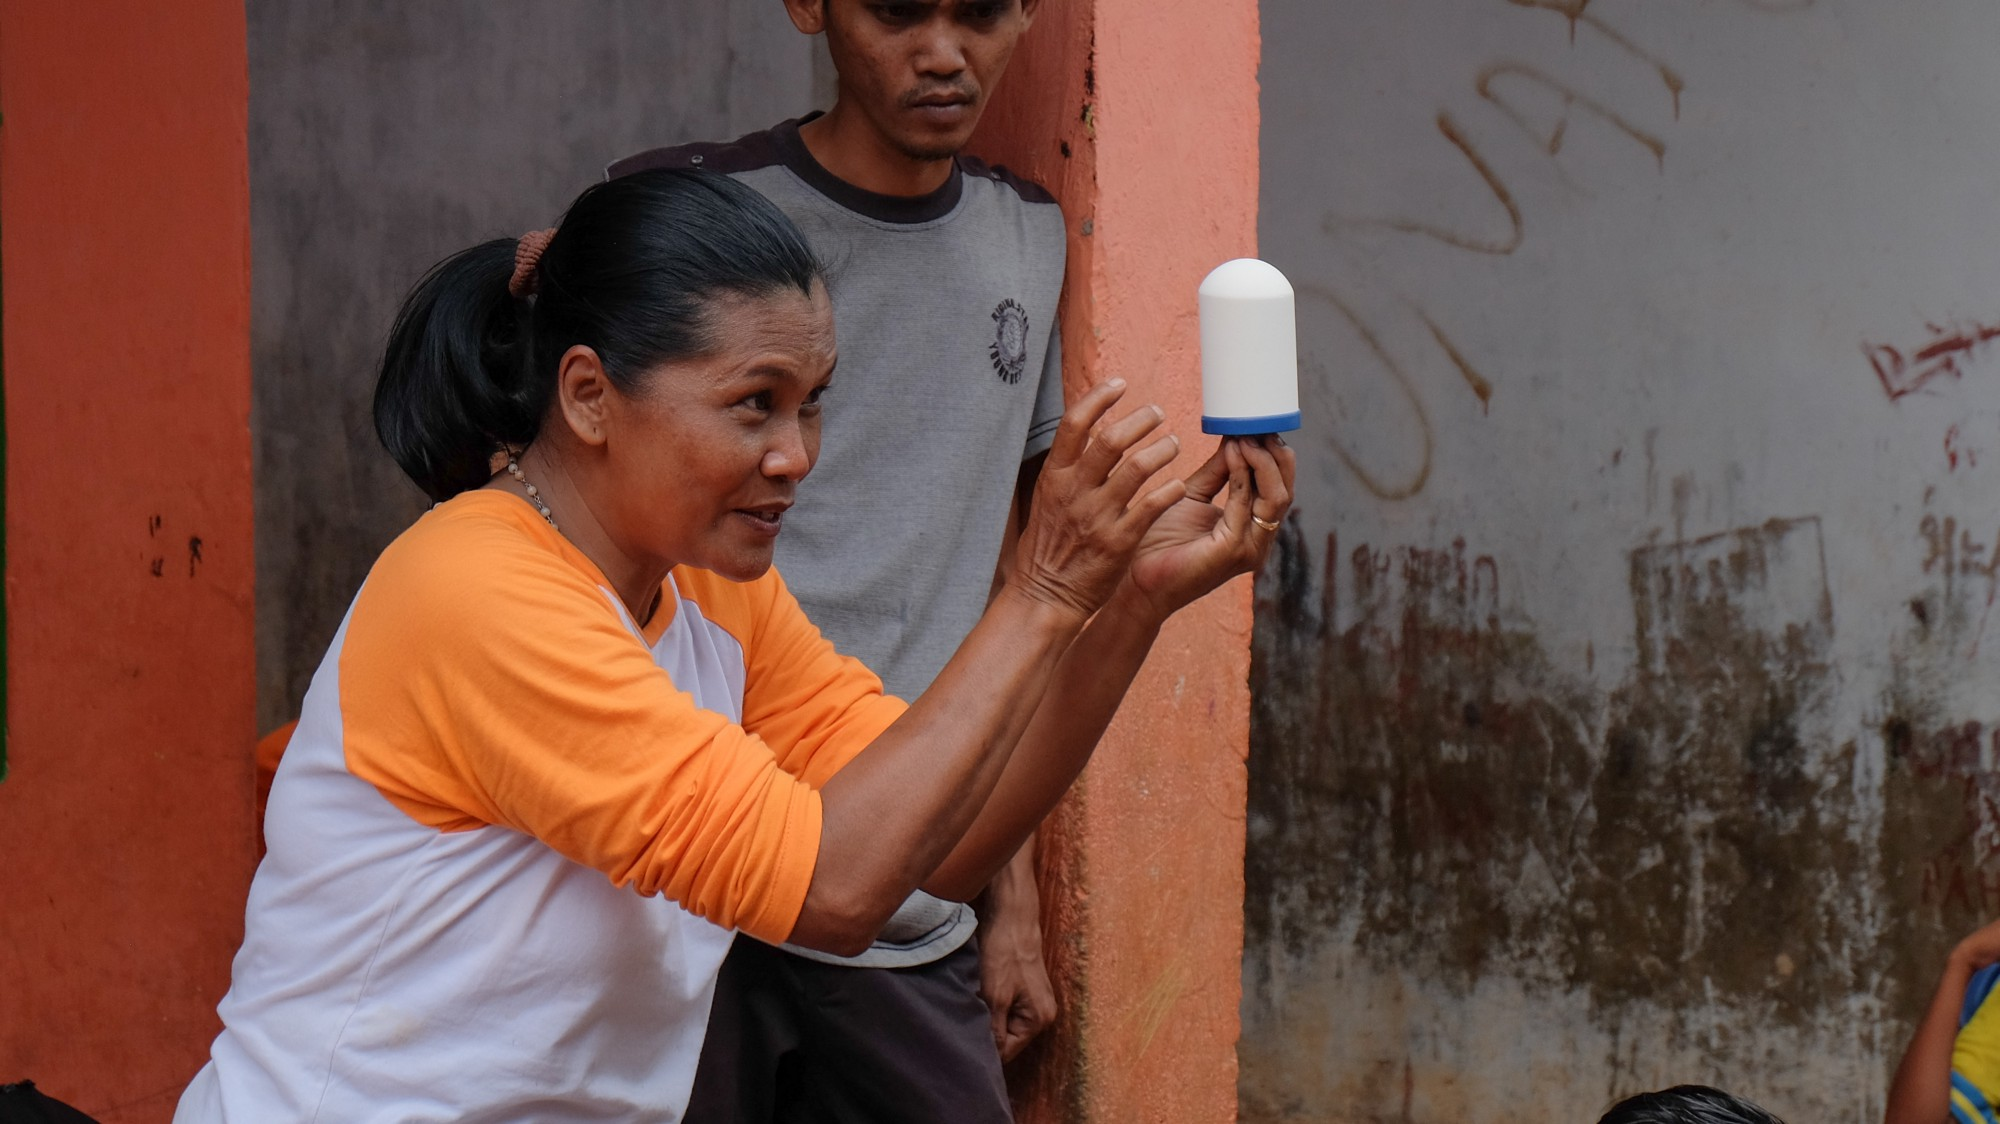 Ibu Bekti has taken on this challenge of improving energy access in her own community.